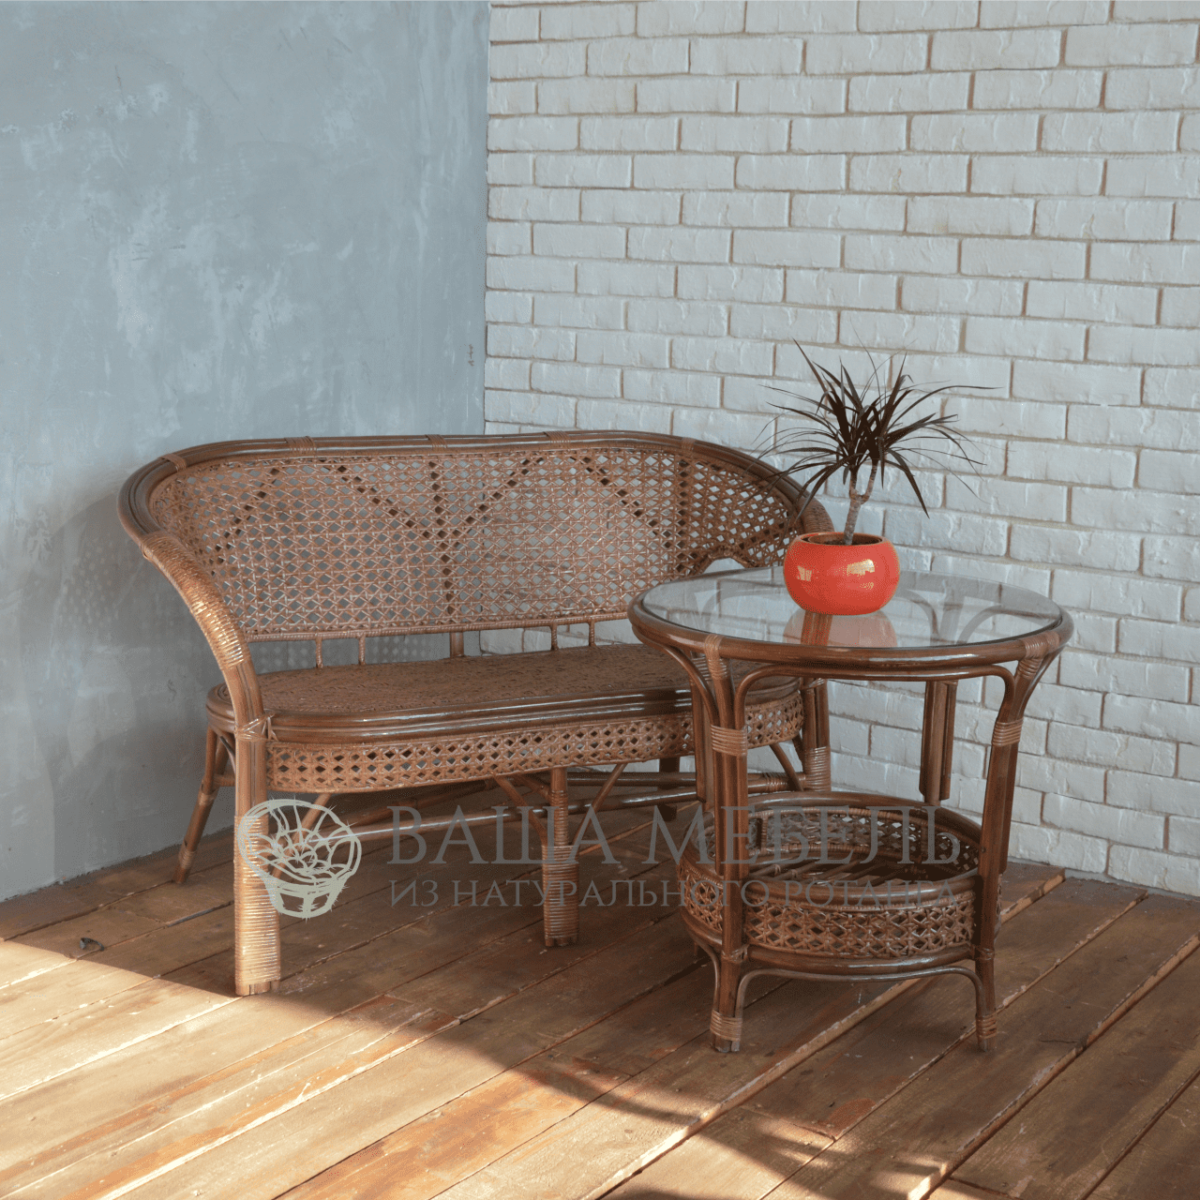 Set: sofa and table Pelangs made of natural rattan.